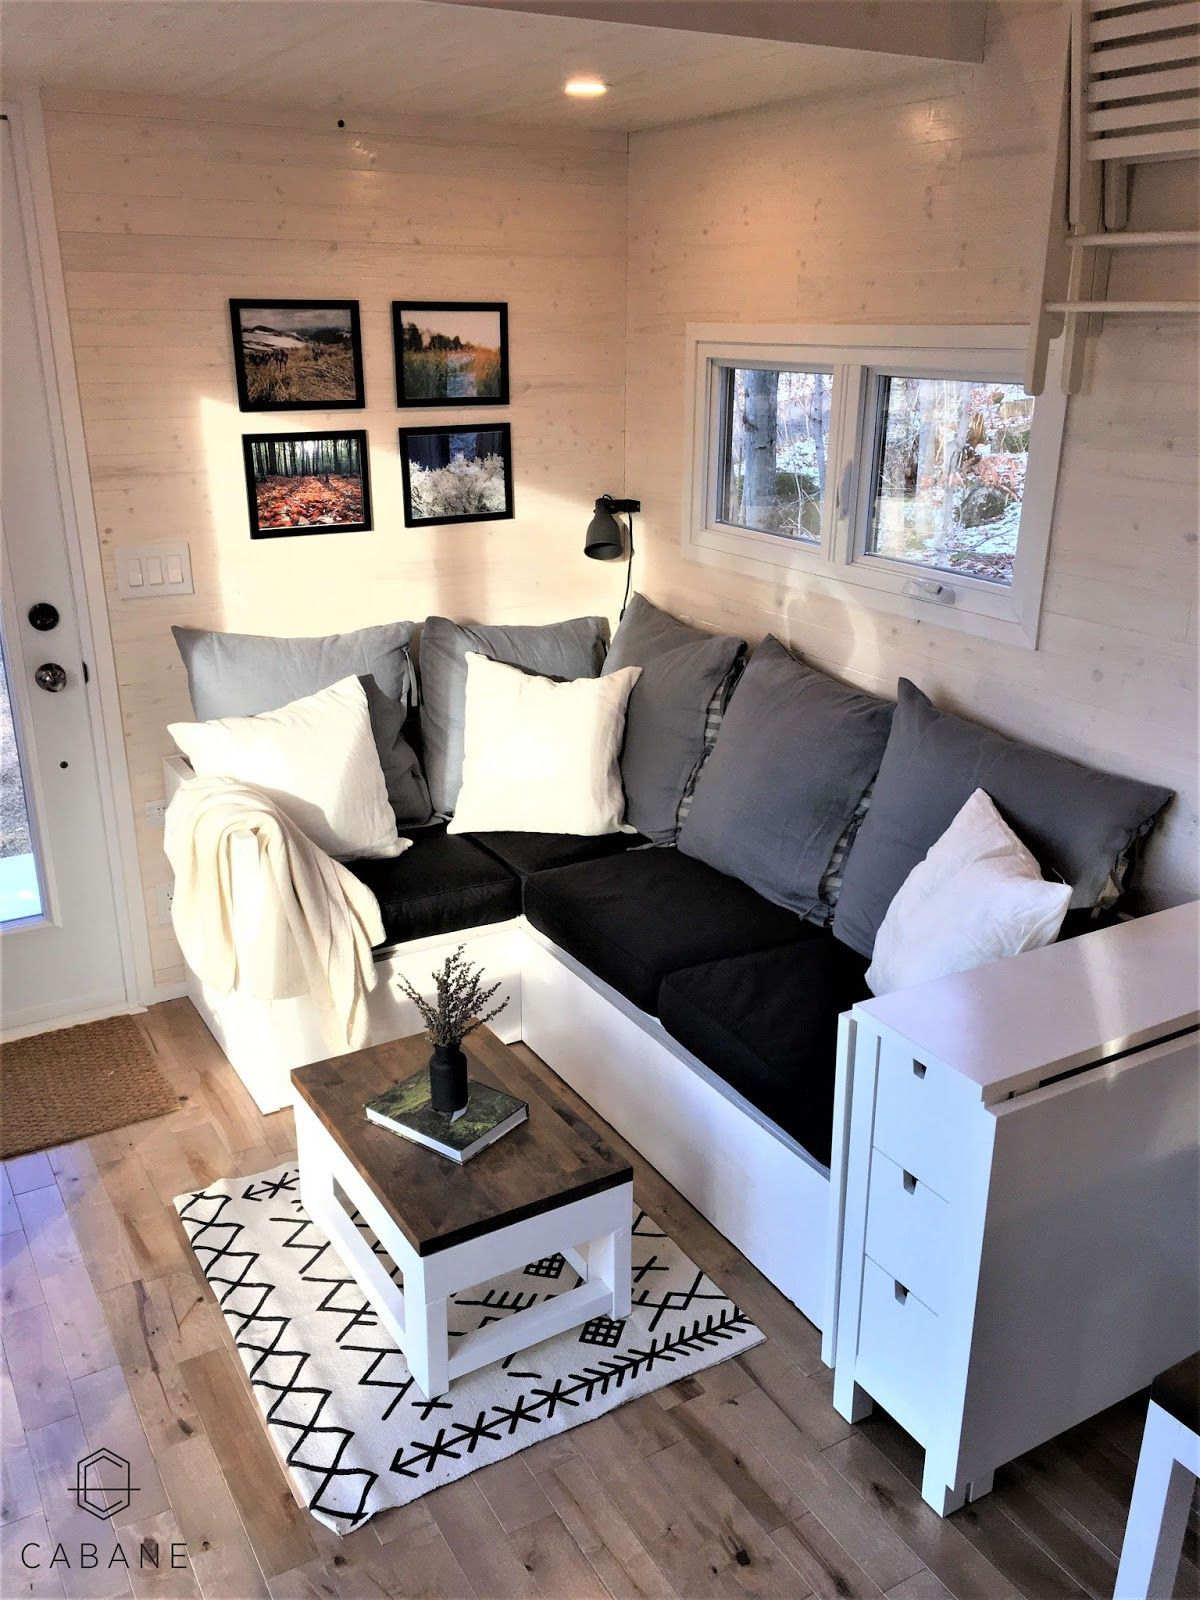 tiny house town a home blog sharing beautiful tiny homes and houses usually under 500 - Beautiful Homes Blog